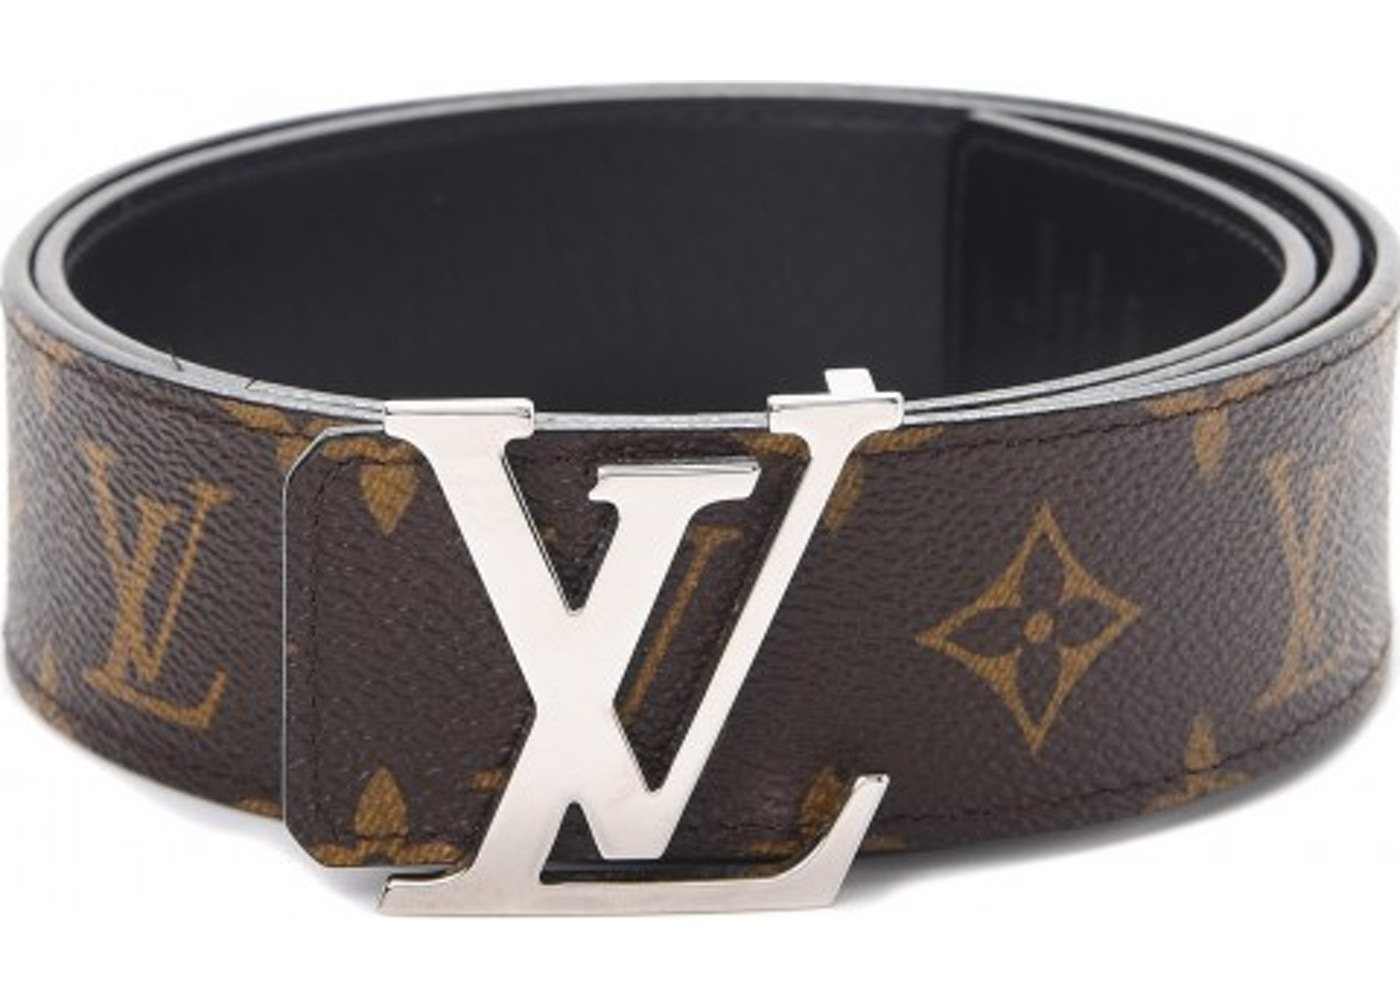 Image result for louis vuitton belt